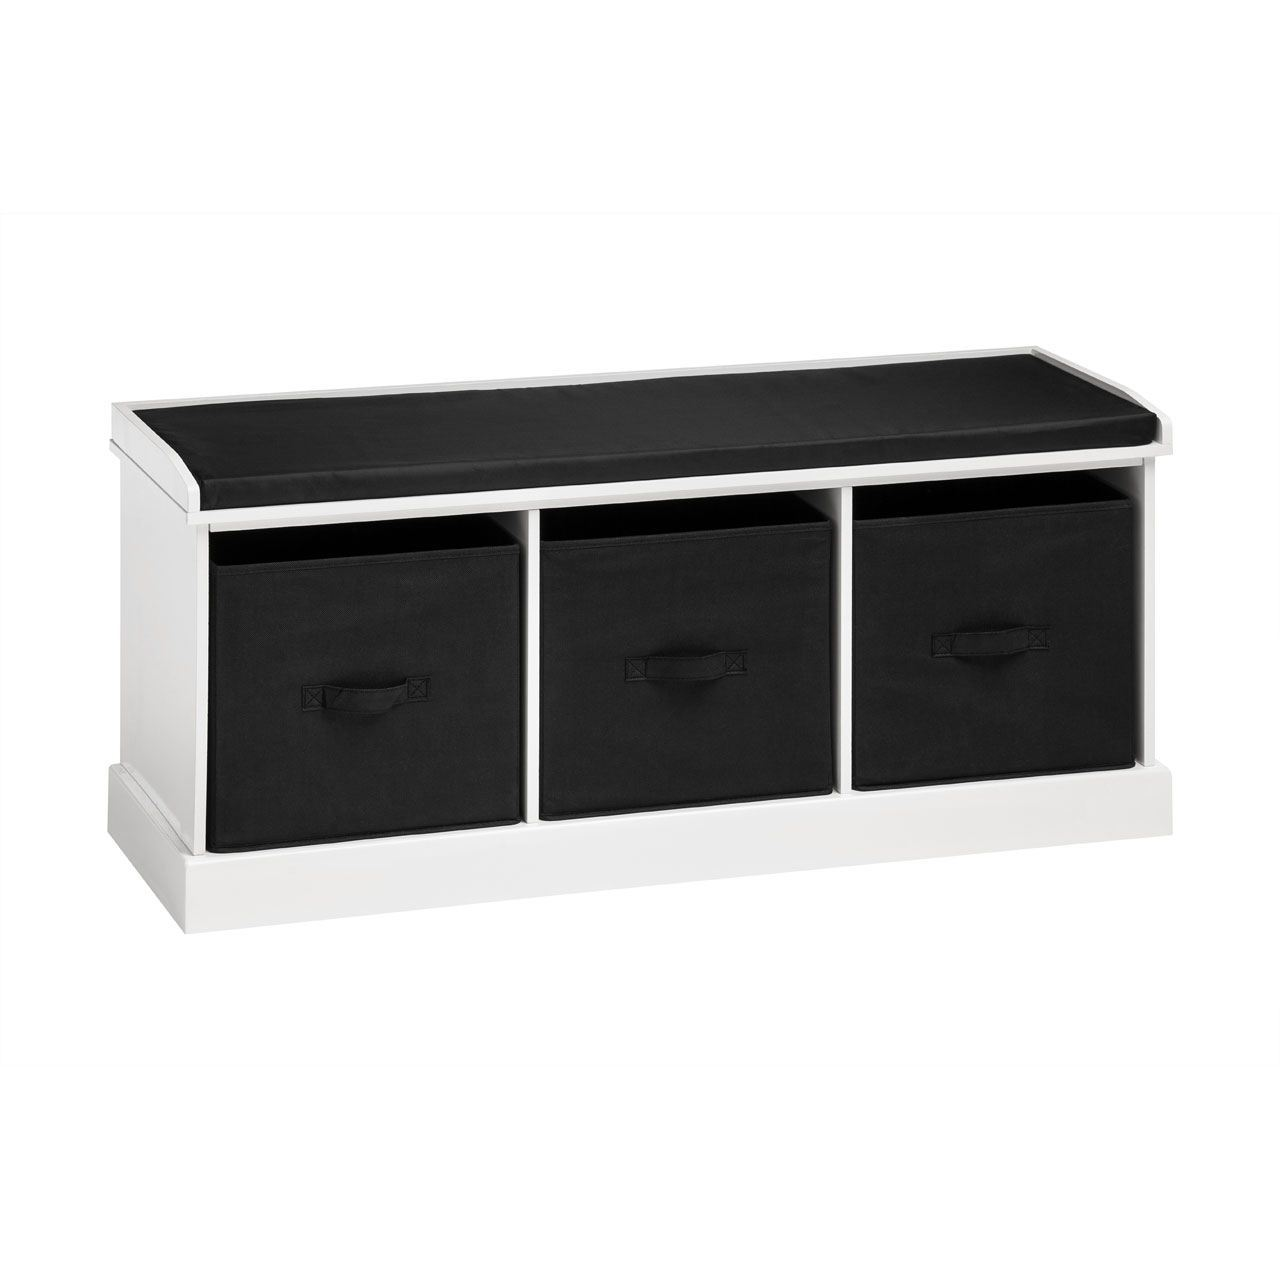 Storage Bench Seat With 3 Box Drawers White Black For Your